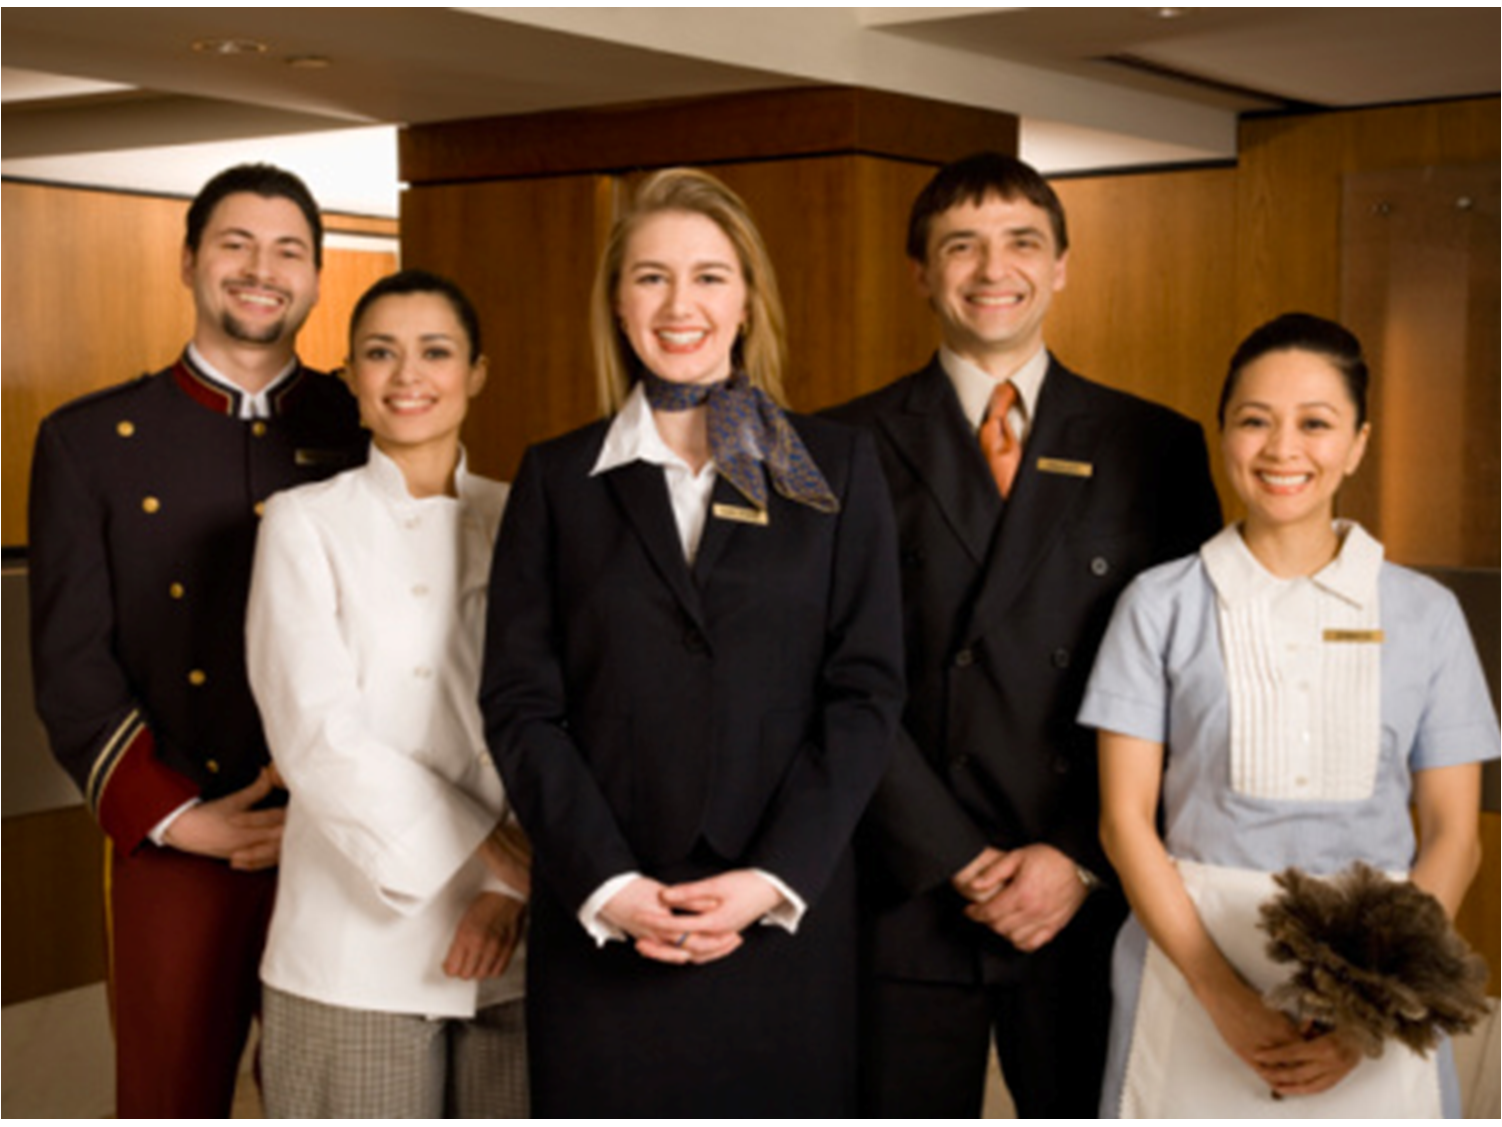 hotel and training programs Learn about the different visa programs available at experience working in marriott hotels within the us program in training programs in the.